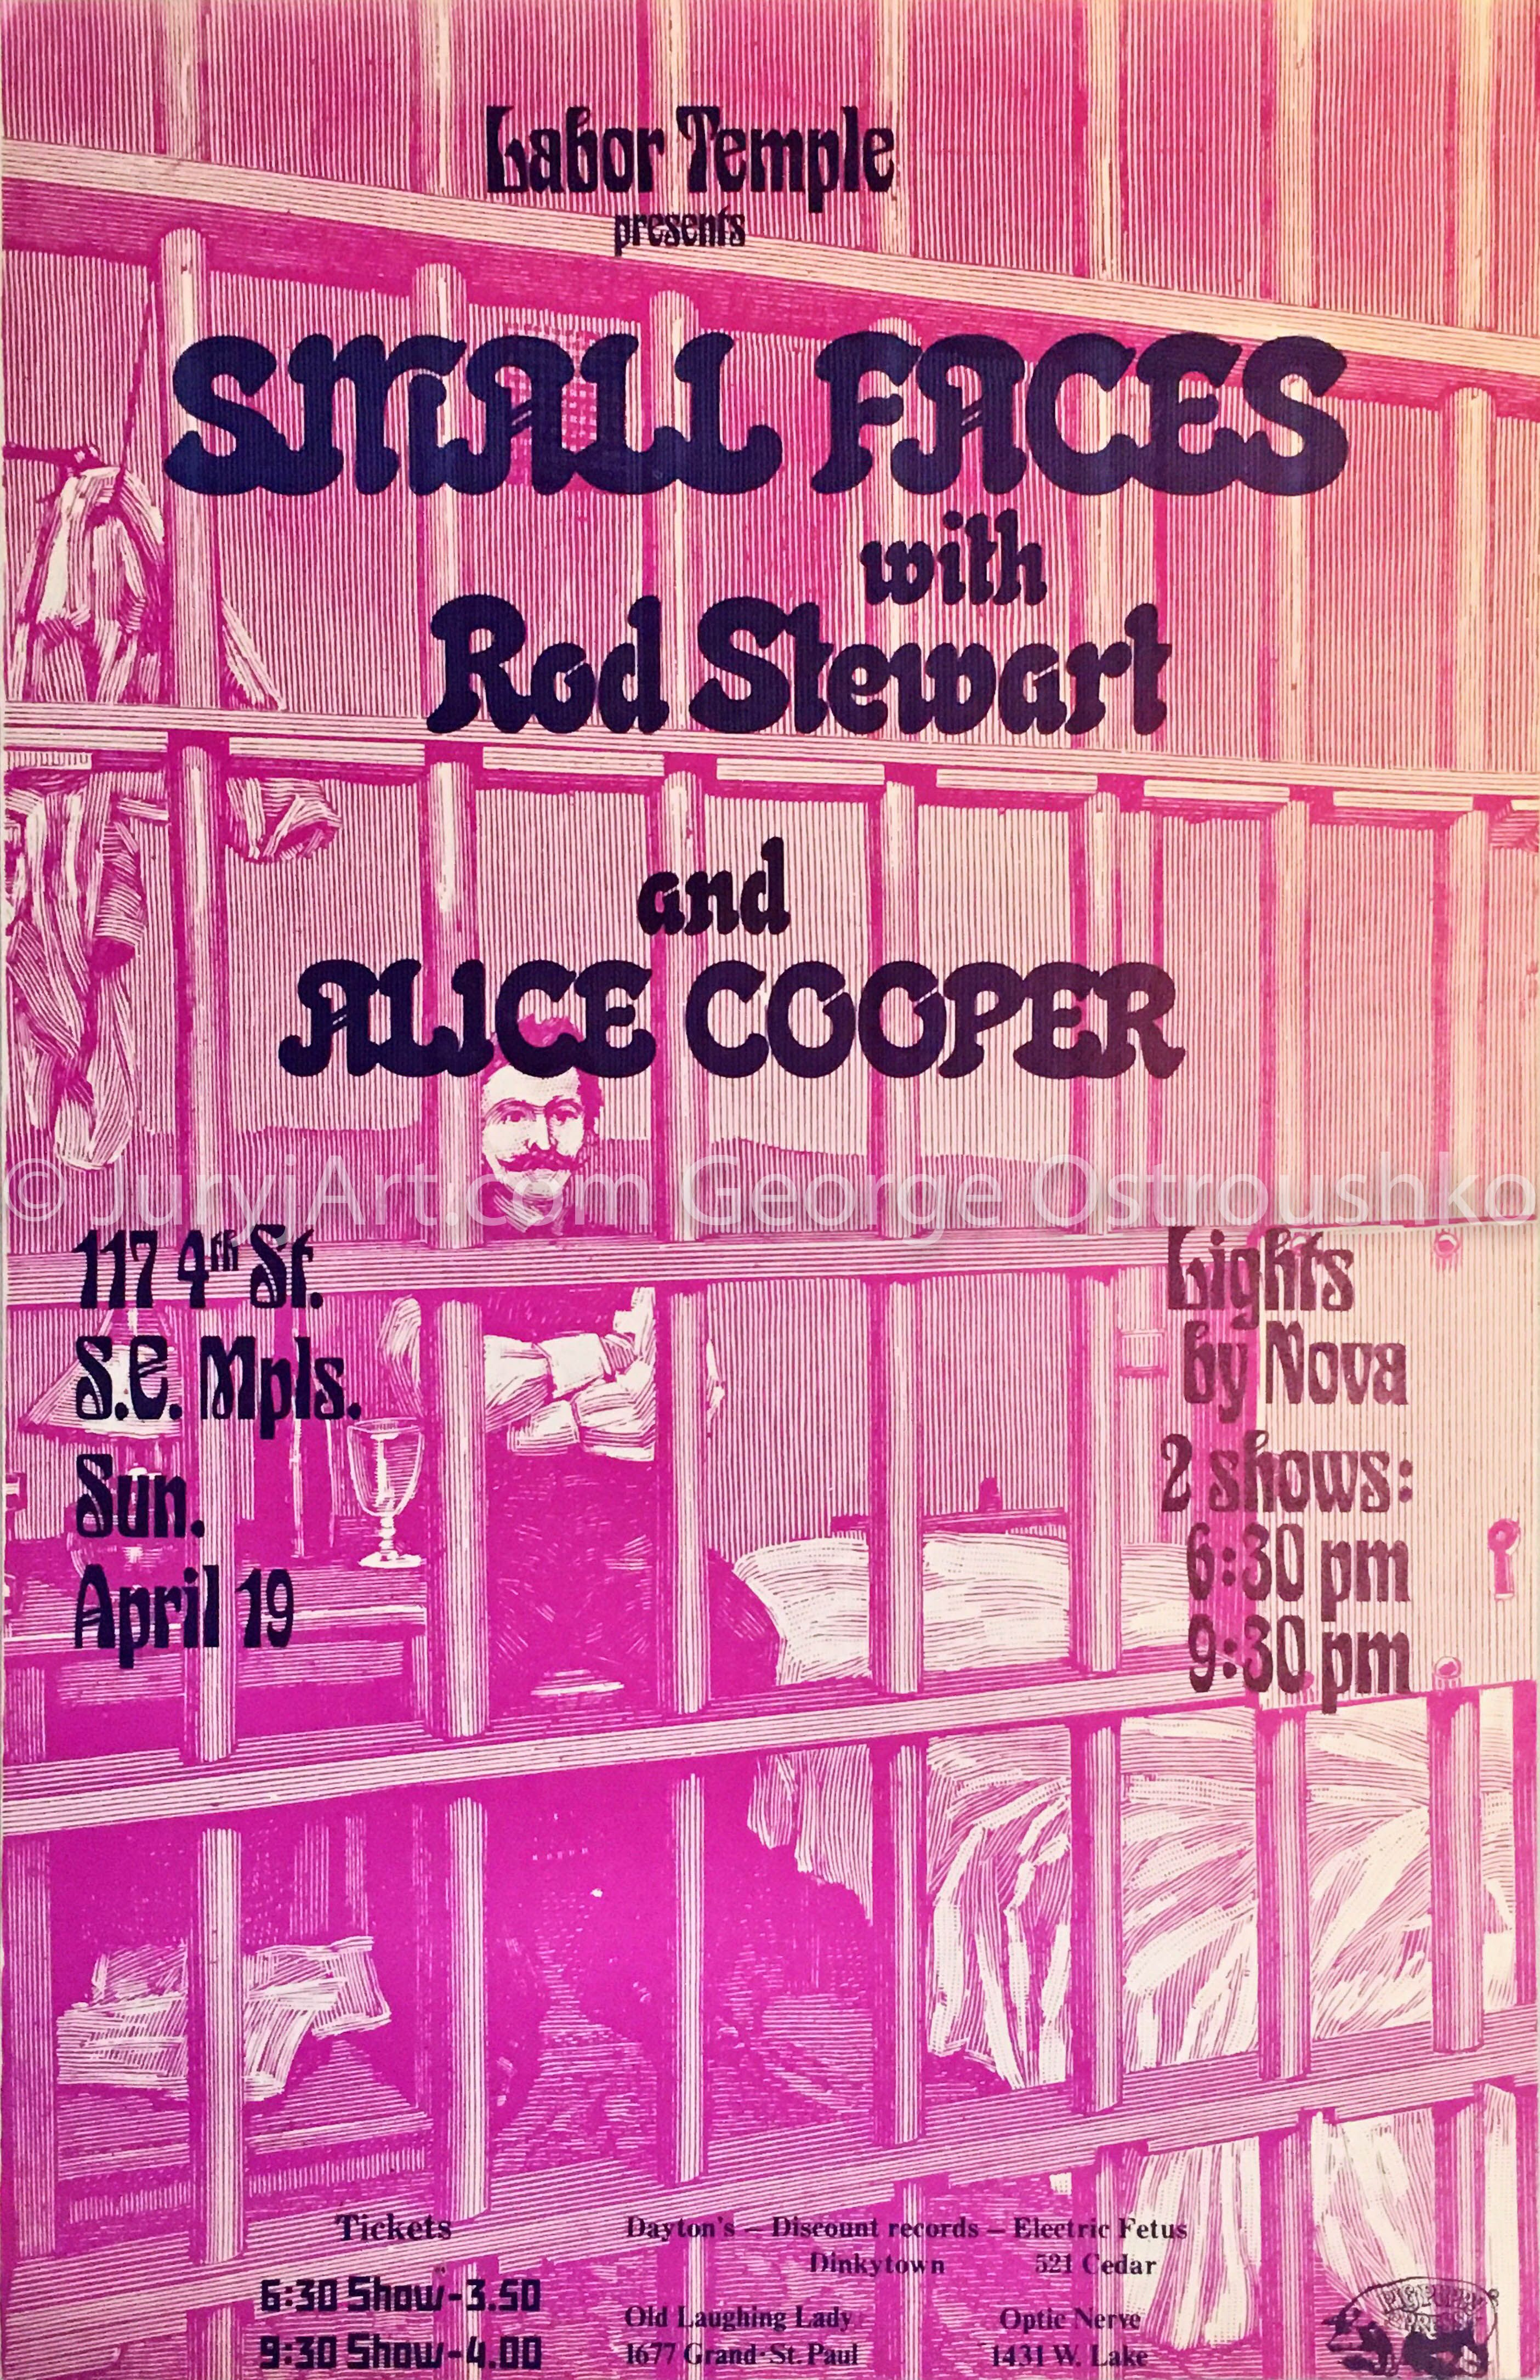 Rare Small Faces W Rod Stewart And Alice Cooper April 19th 1970 Minneapolis Labor Temple Vintage Concert Posters Vintage Music Art Faces Band